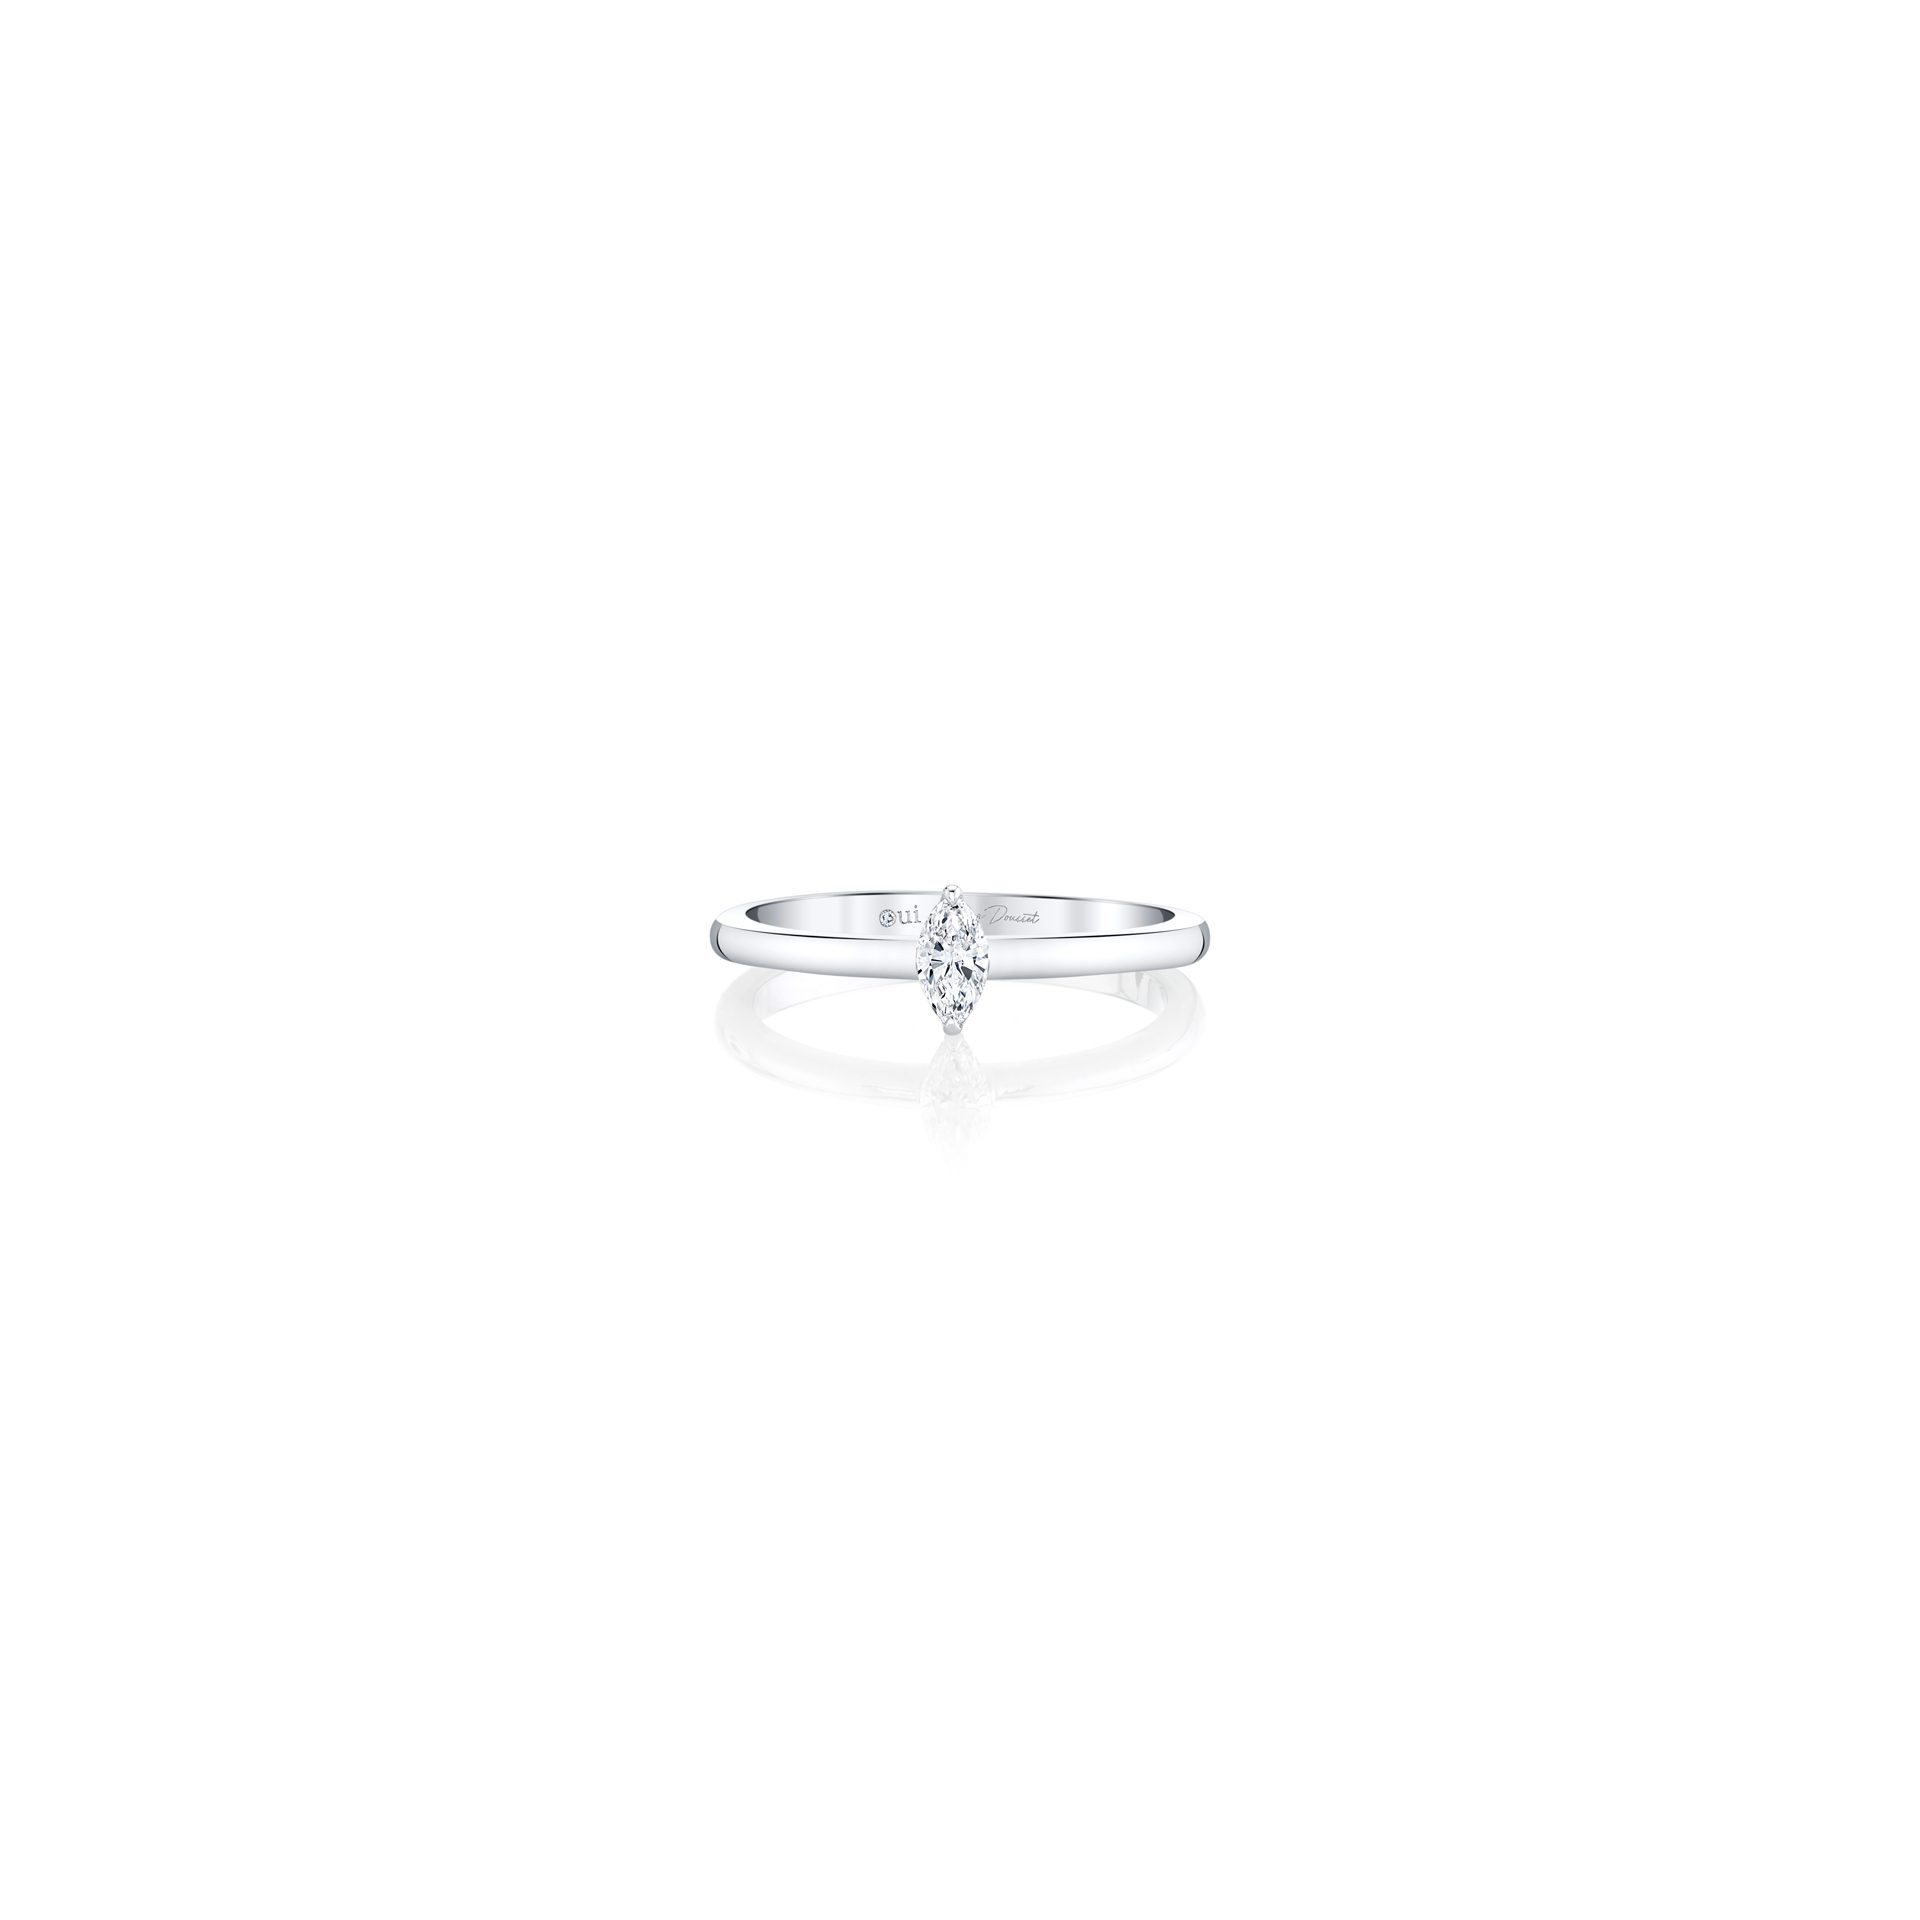 La Petite Marquise Diamond Wedding Band in 18k White Gold Front View by Oui by Jean Dousset